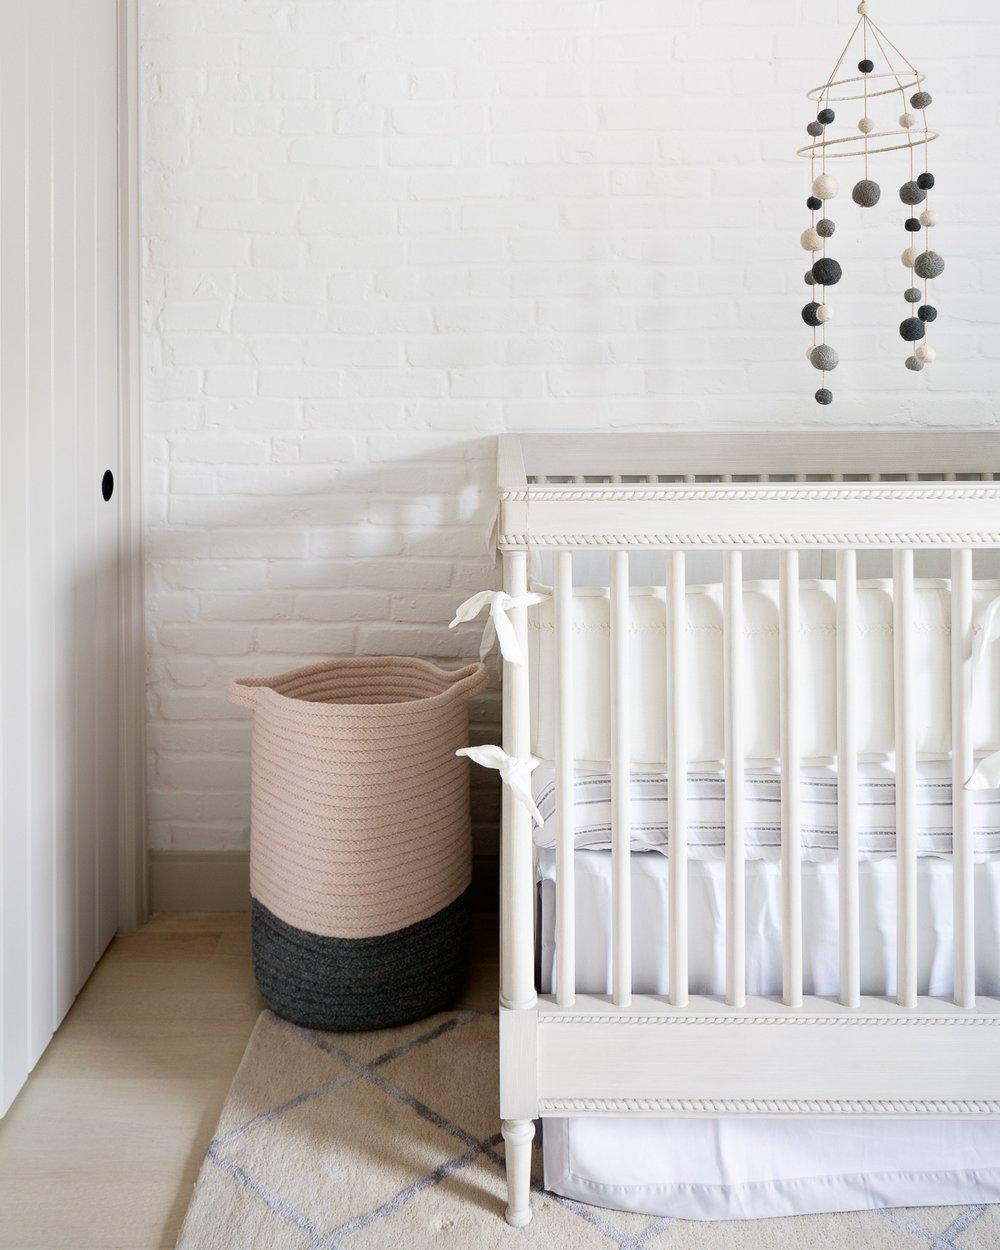 We thought of everything… really. Laundry hamper is tucked away on the other side of the crib. Love the shadows against the brick wall and the closet door. The layers of bedding with ivory, whites and pale blue make it the coziest snooze zone in the neighborhood.